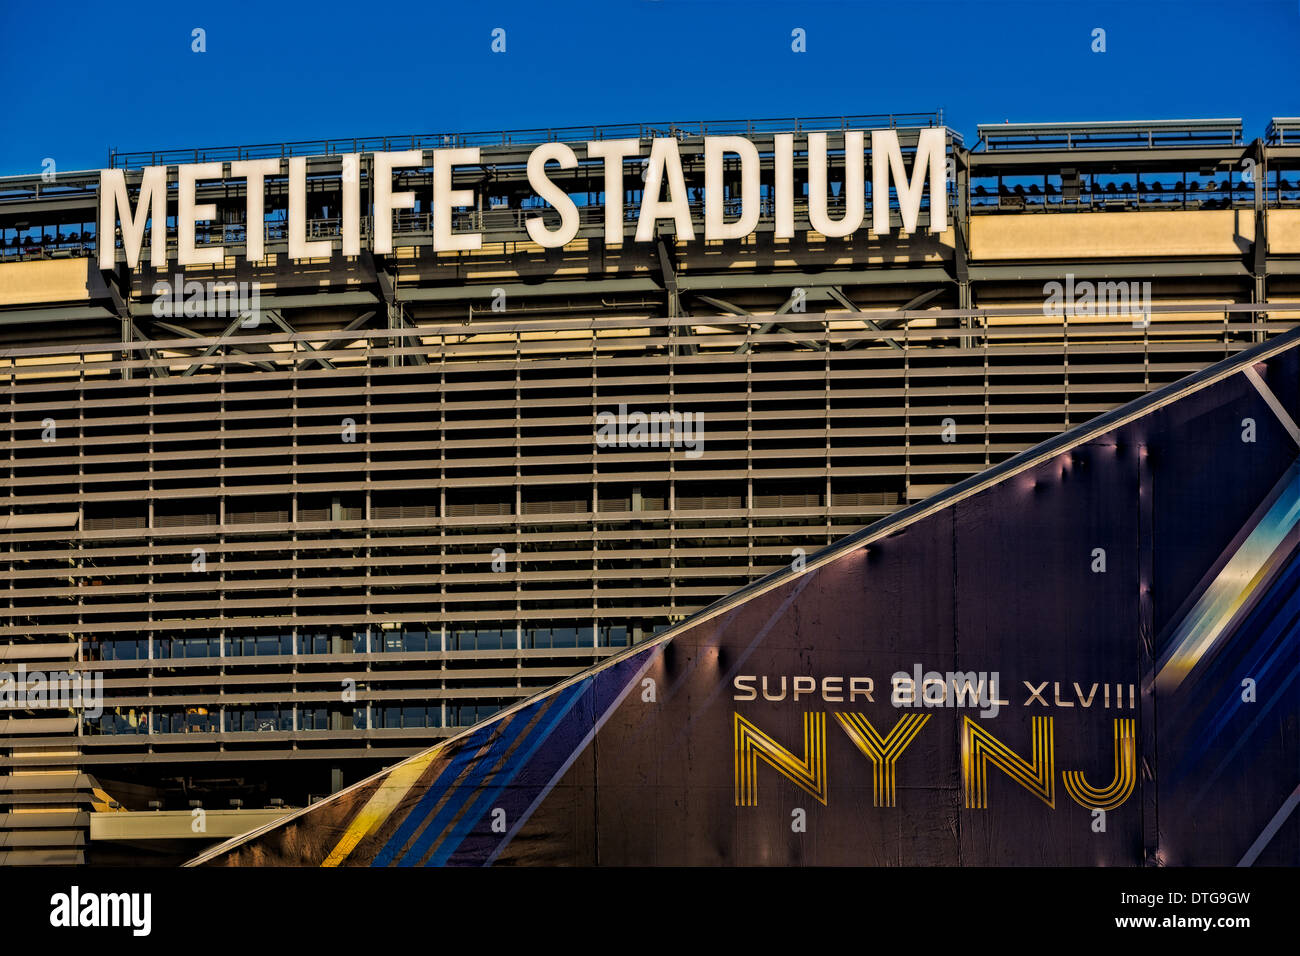 Exterior view of the MetLife Stadium in Rutherford, New Jersey, with Super Bowl XLVIII NY NJ in foreground. - Stock Image